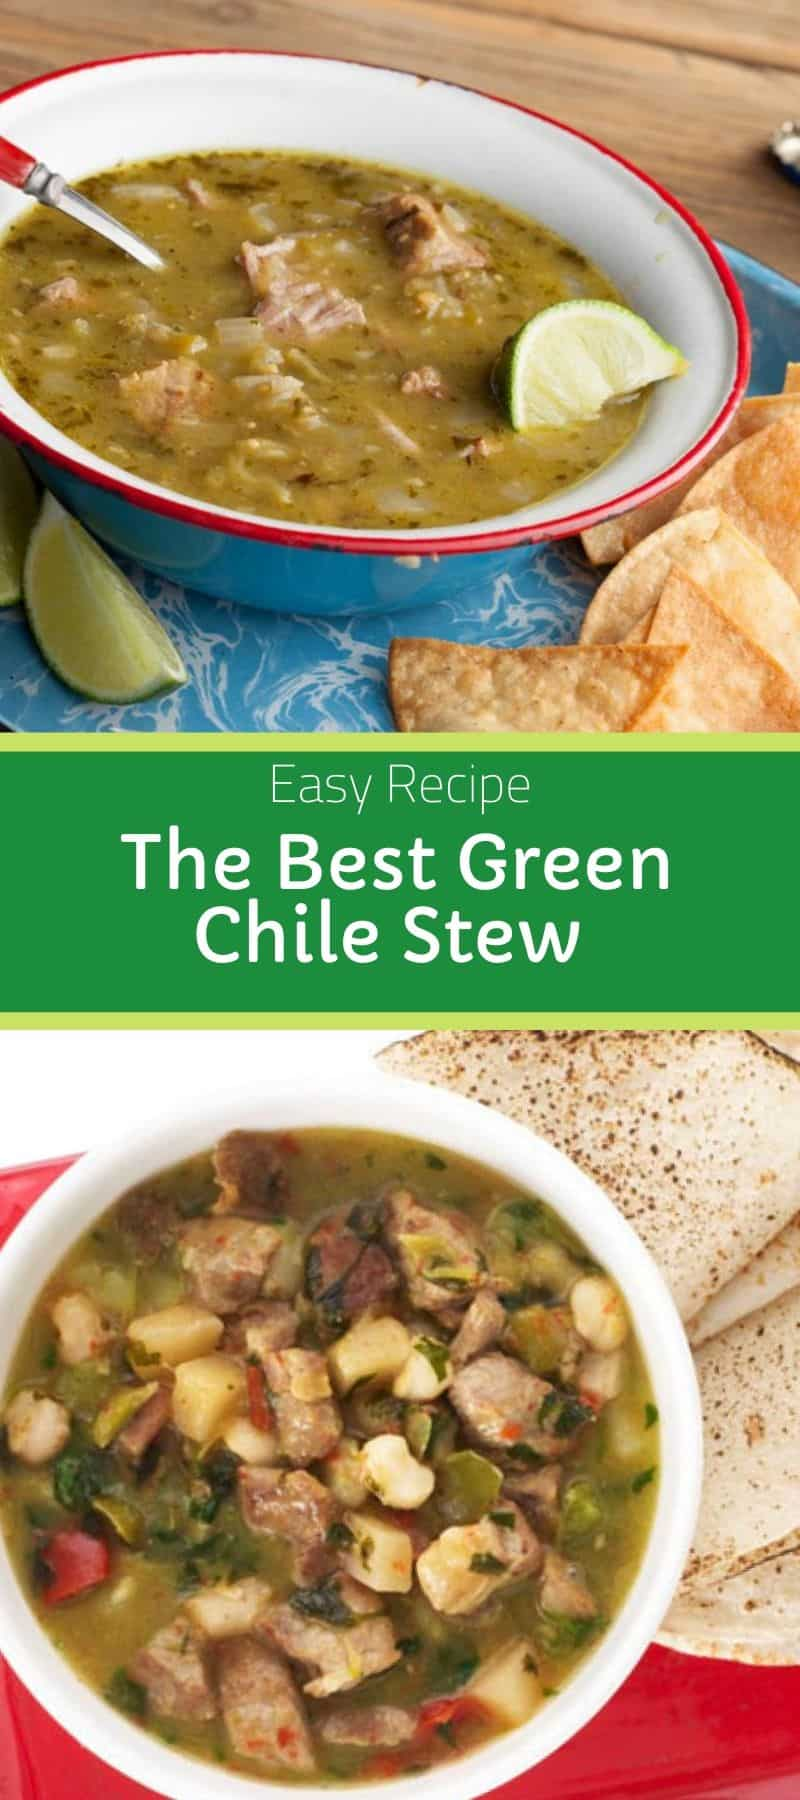 The Best Green Chile Stew Recipe